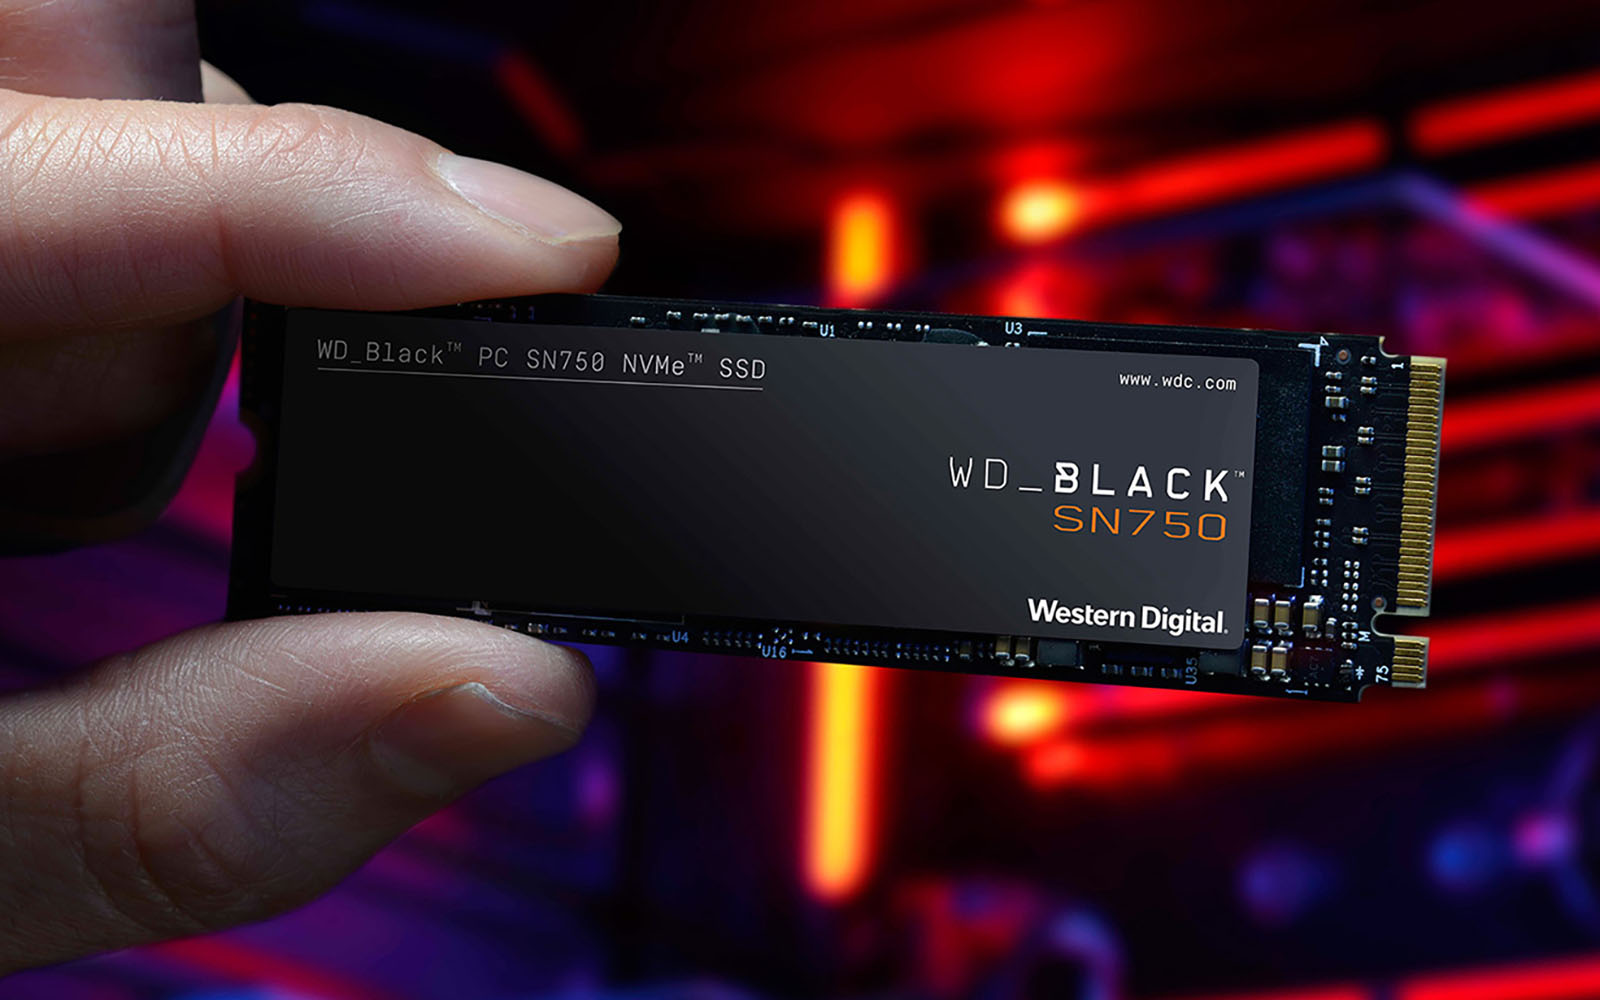 Buy 2TB WD Black M.2 SSD with free shipping and 40% off for a limited time